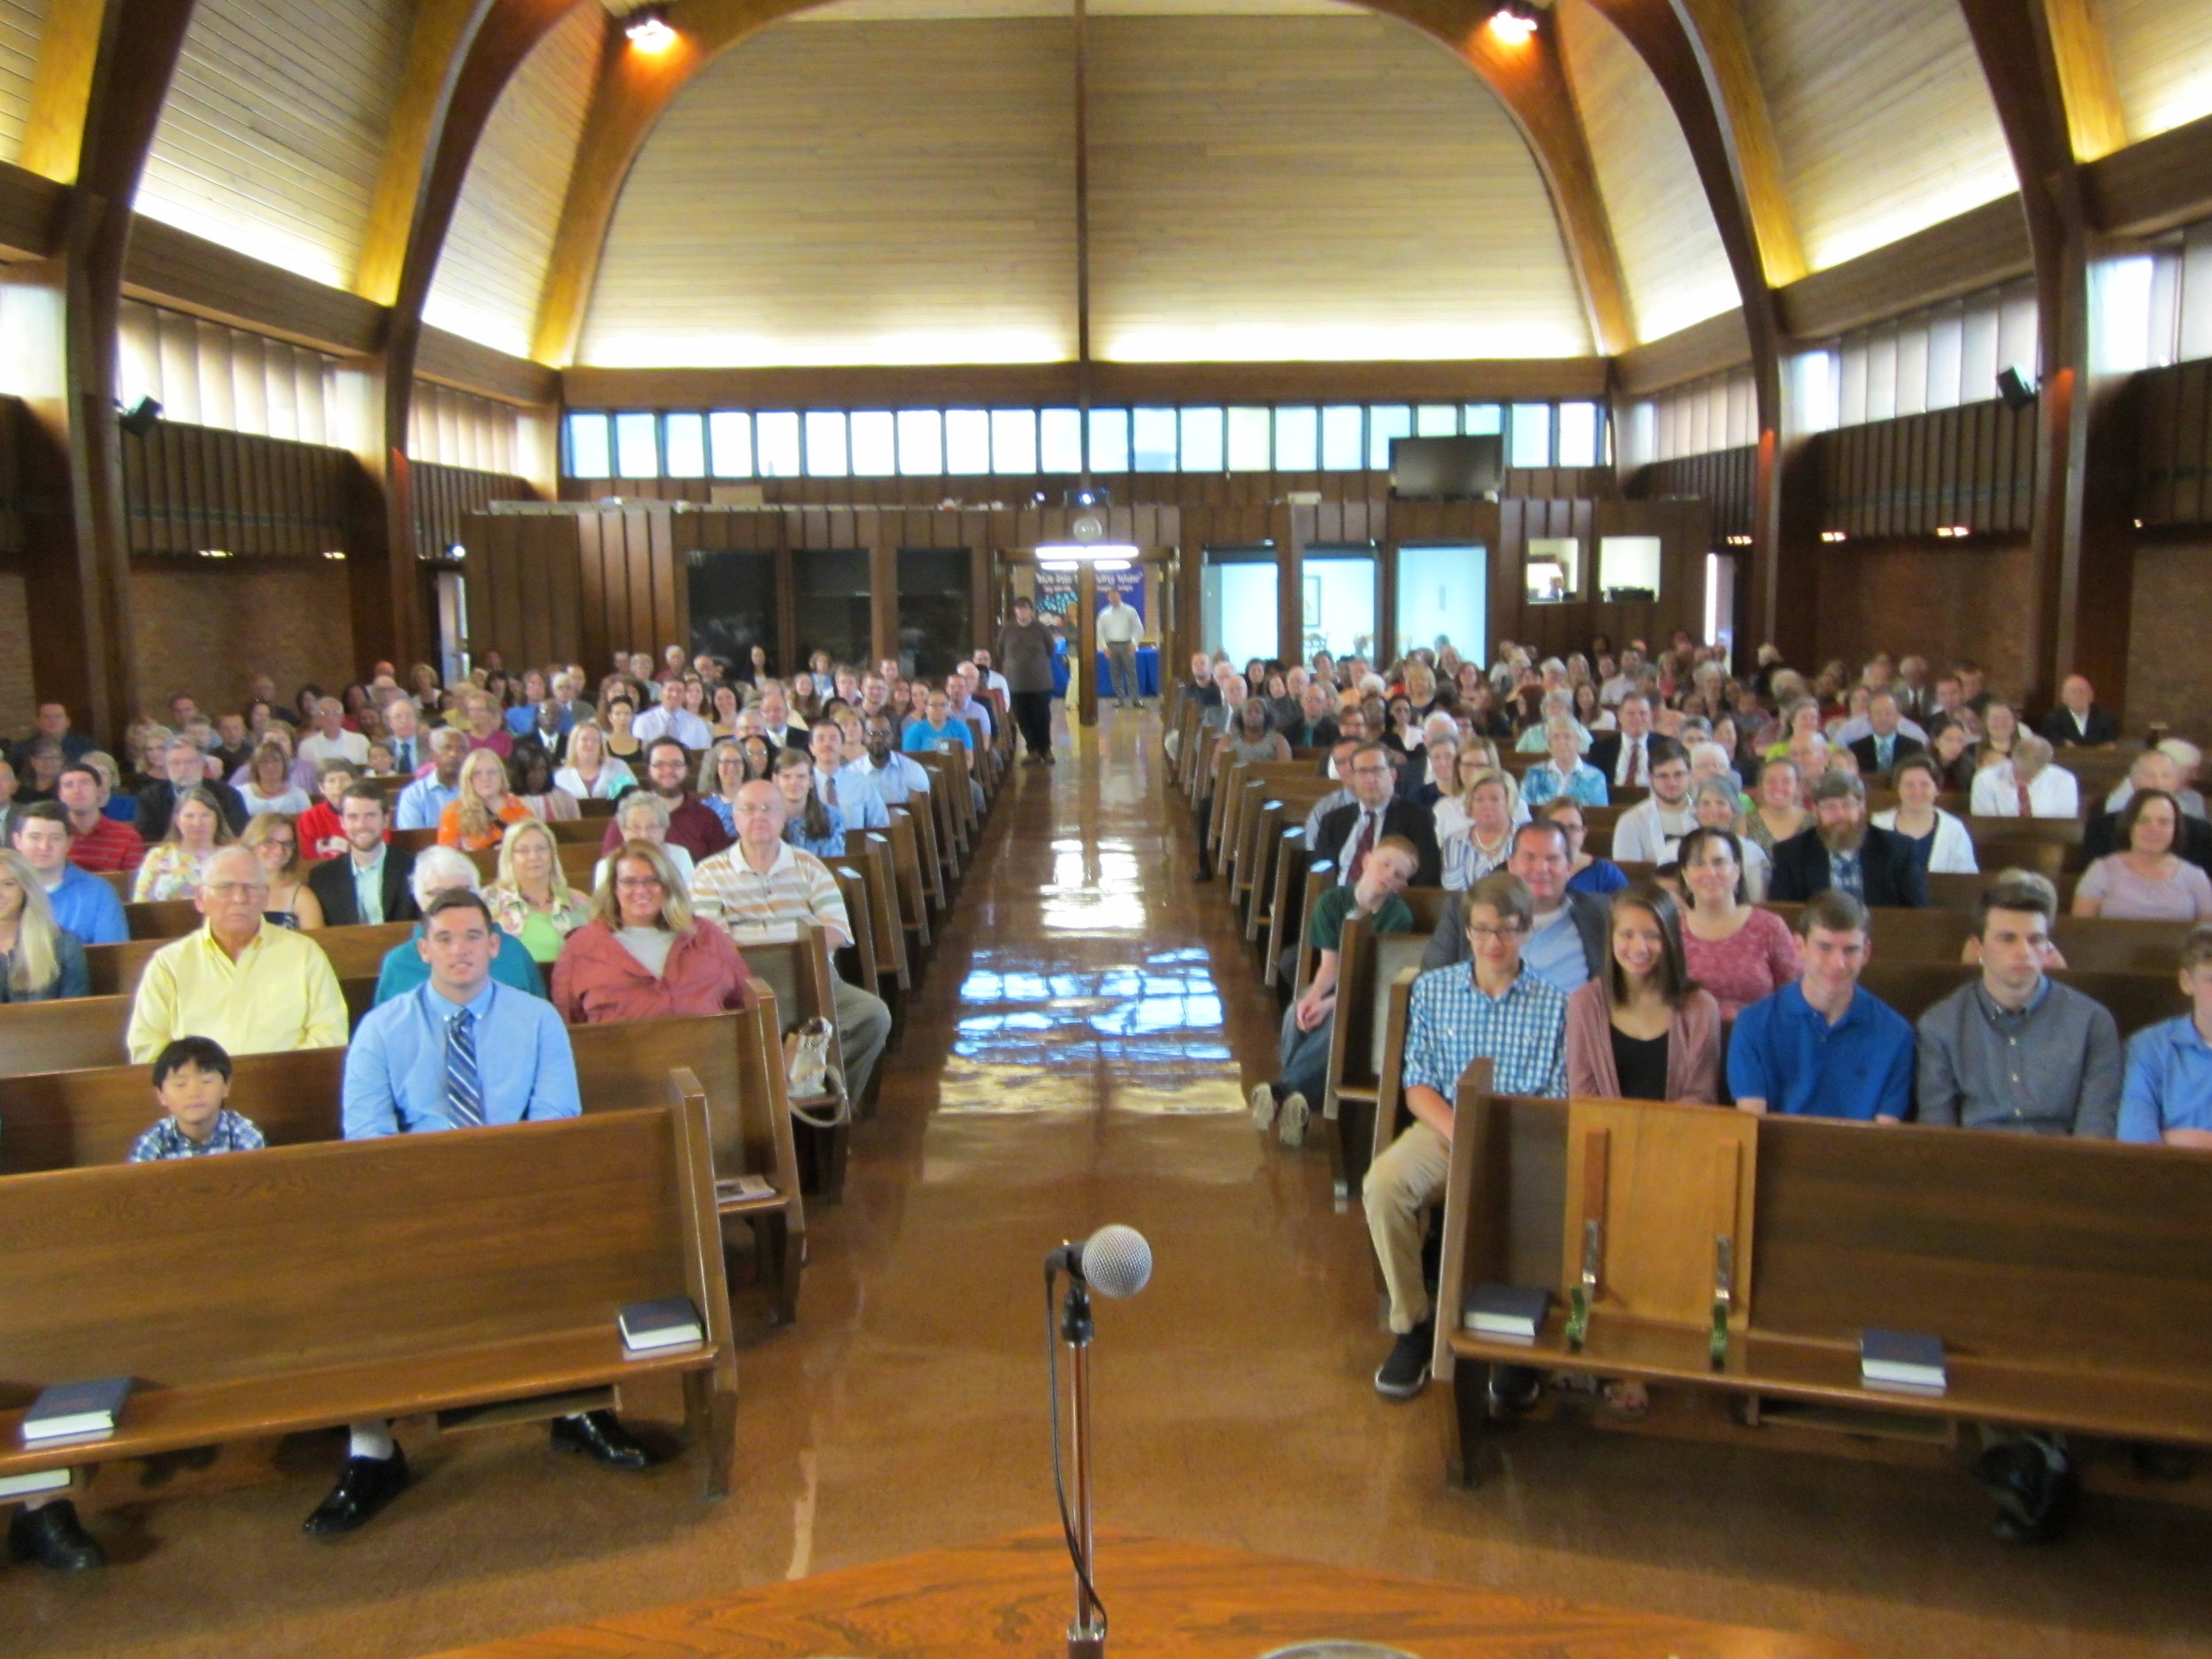 Church auditorium-2.JPG